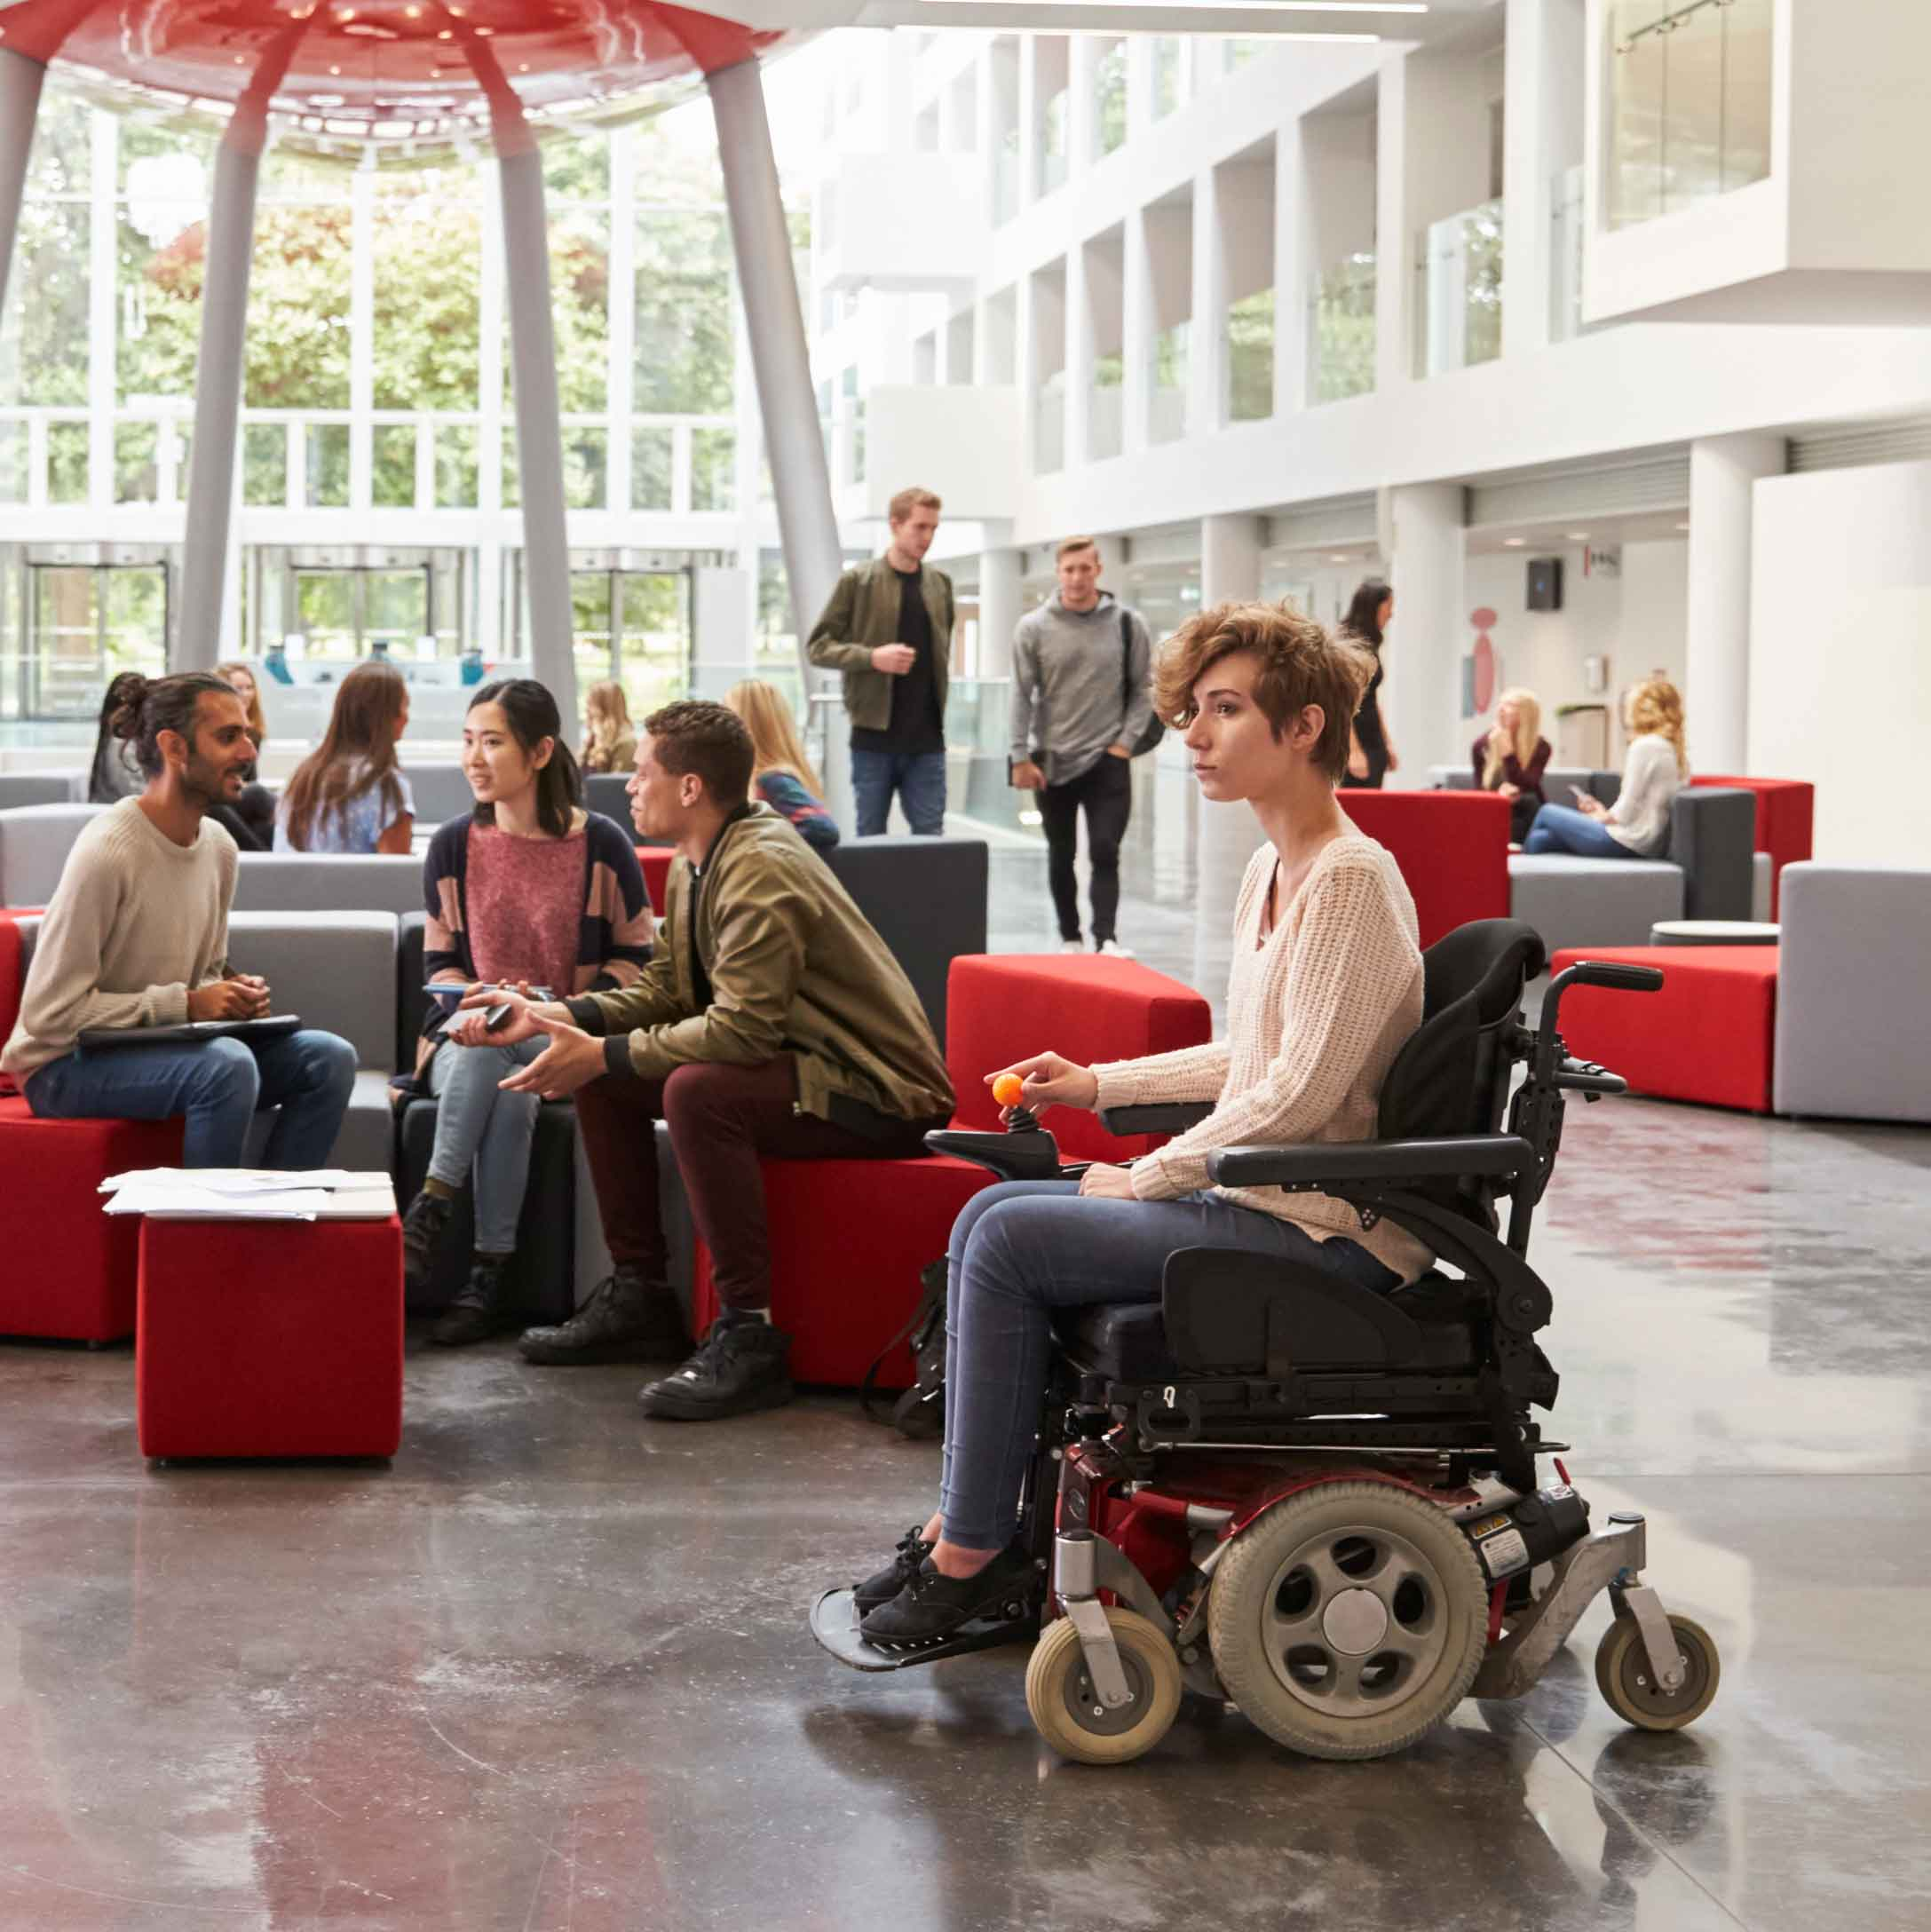 Student in wheelchair and colleagues in university lobby